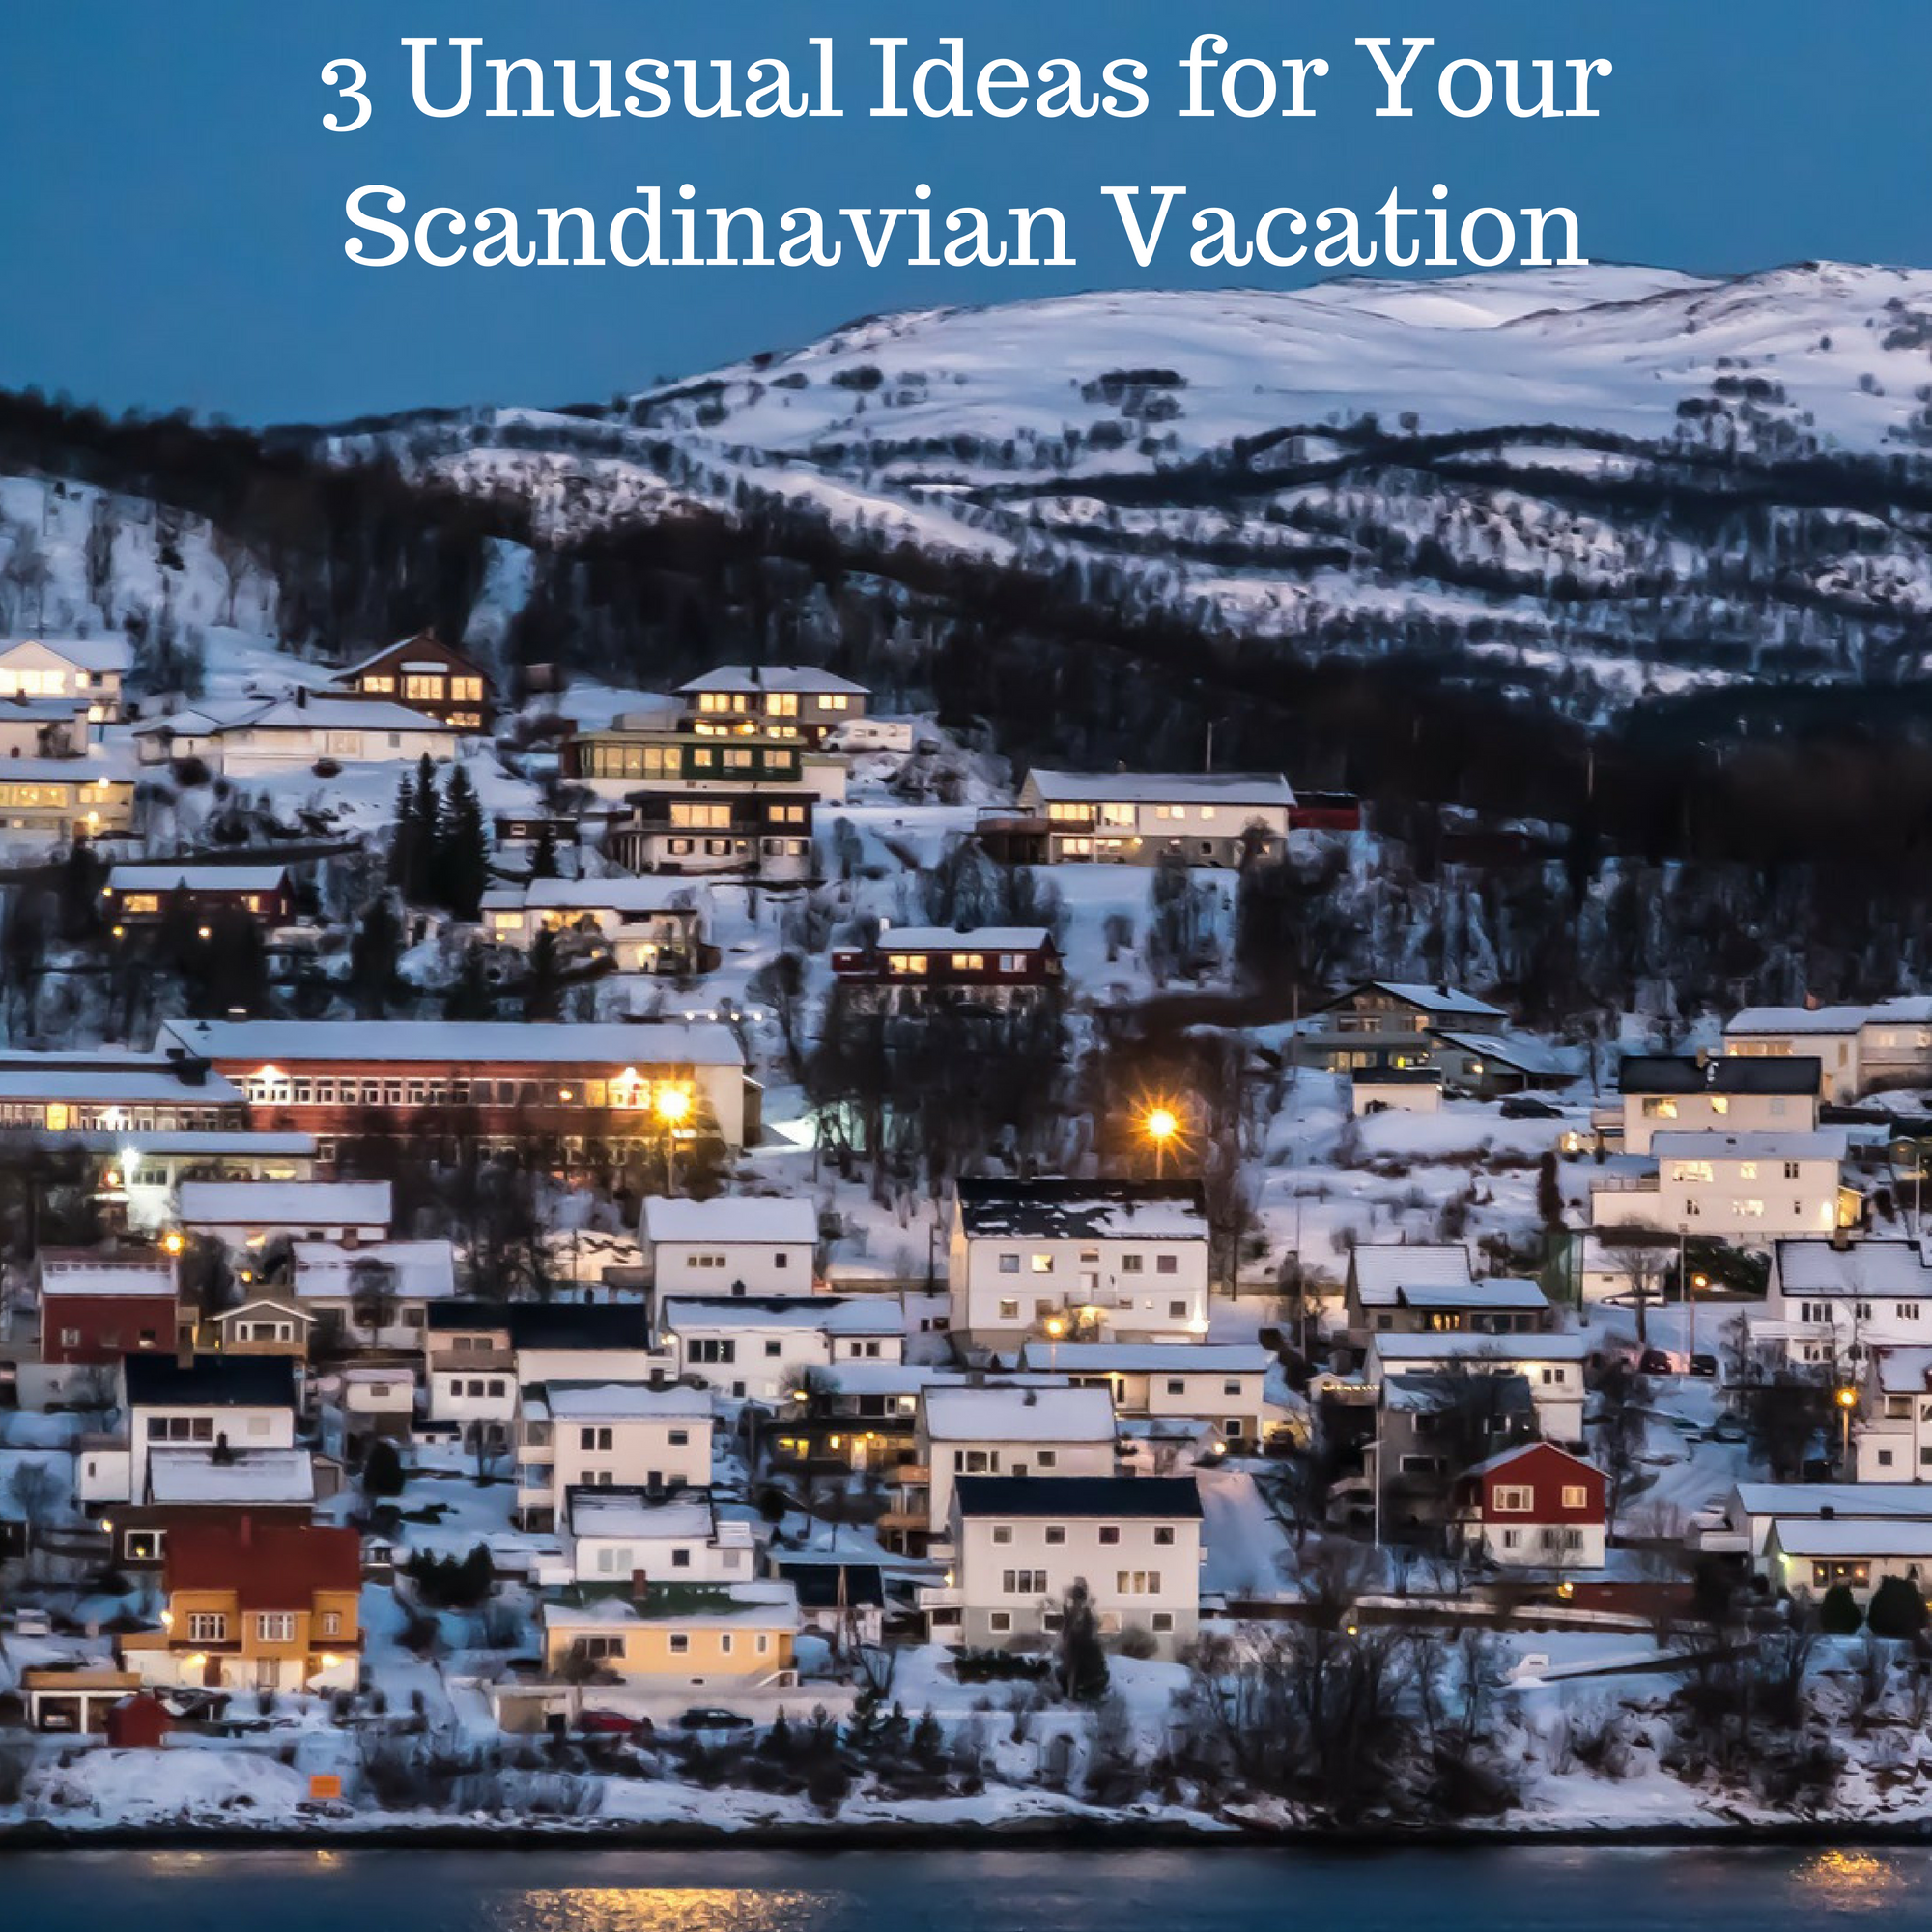 3 Unusual Ideas for Your Scandinavian Vacation